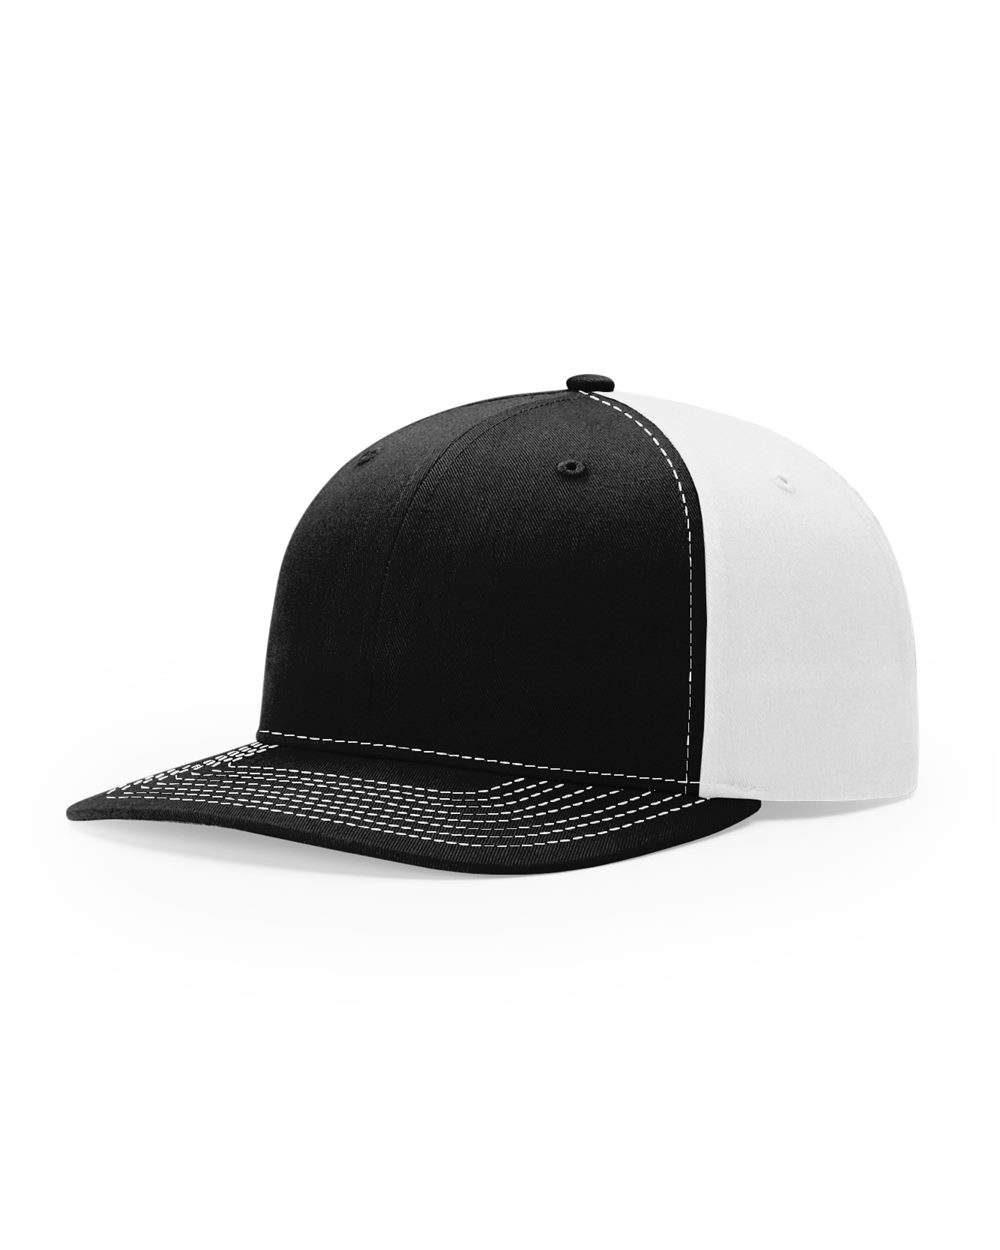 Richardson 312 - Twill Back Trucker Cap